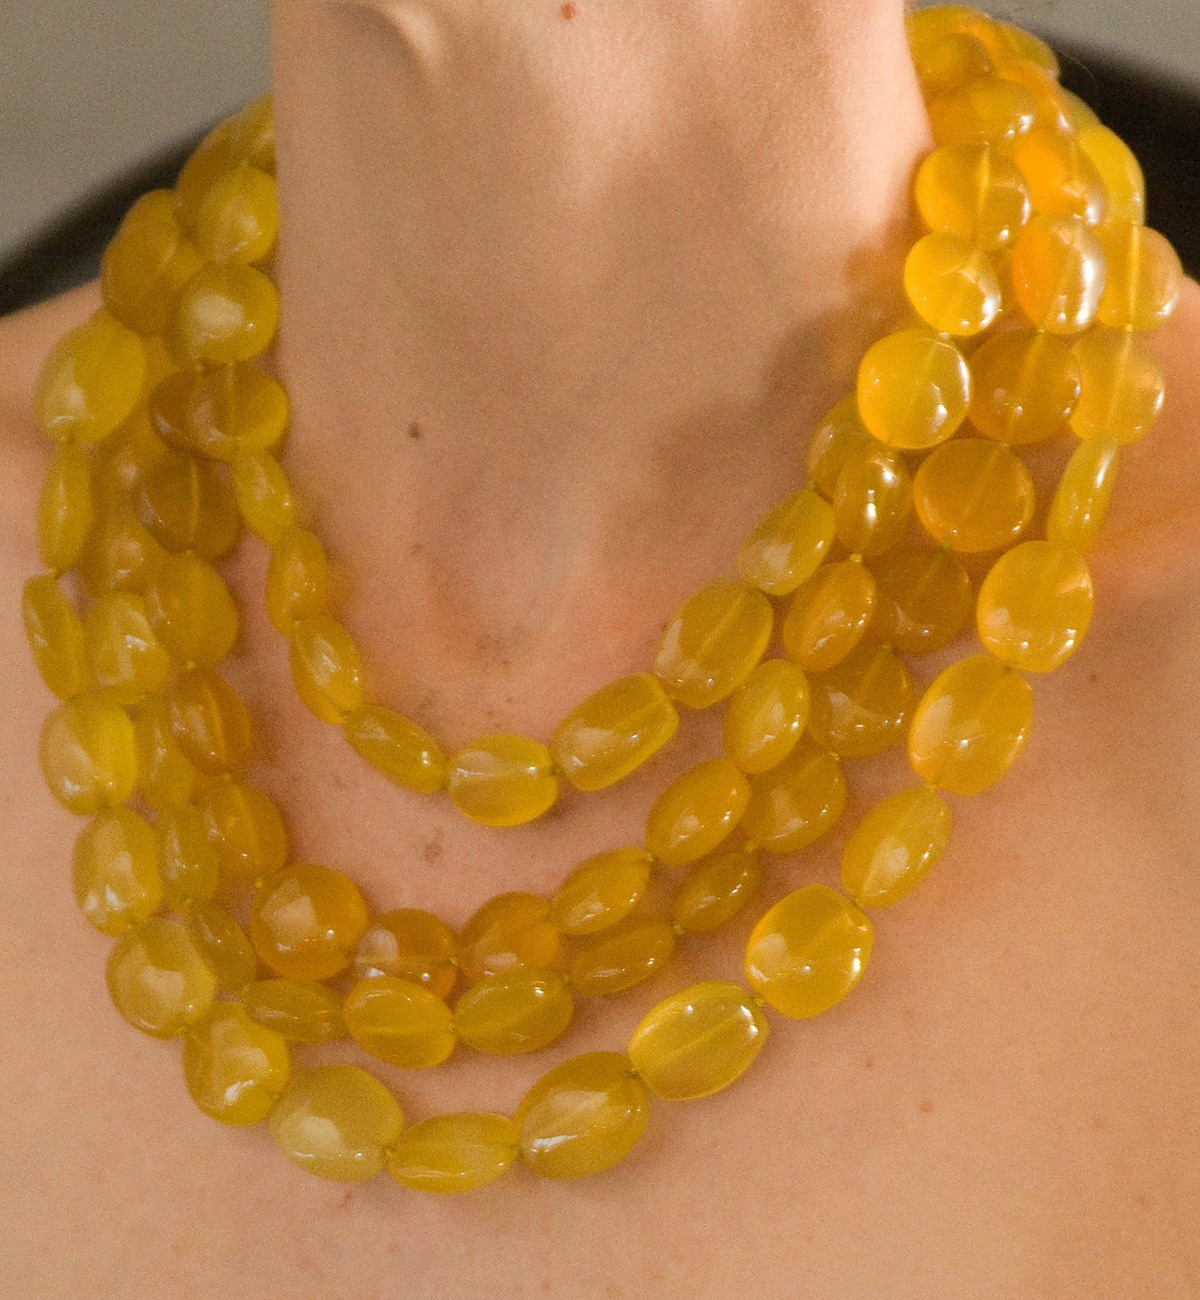 polished yellow chalcedony necklace